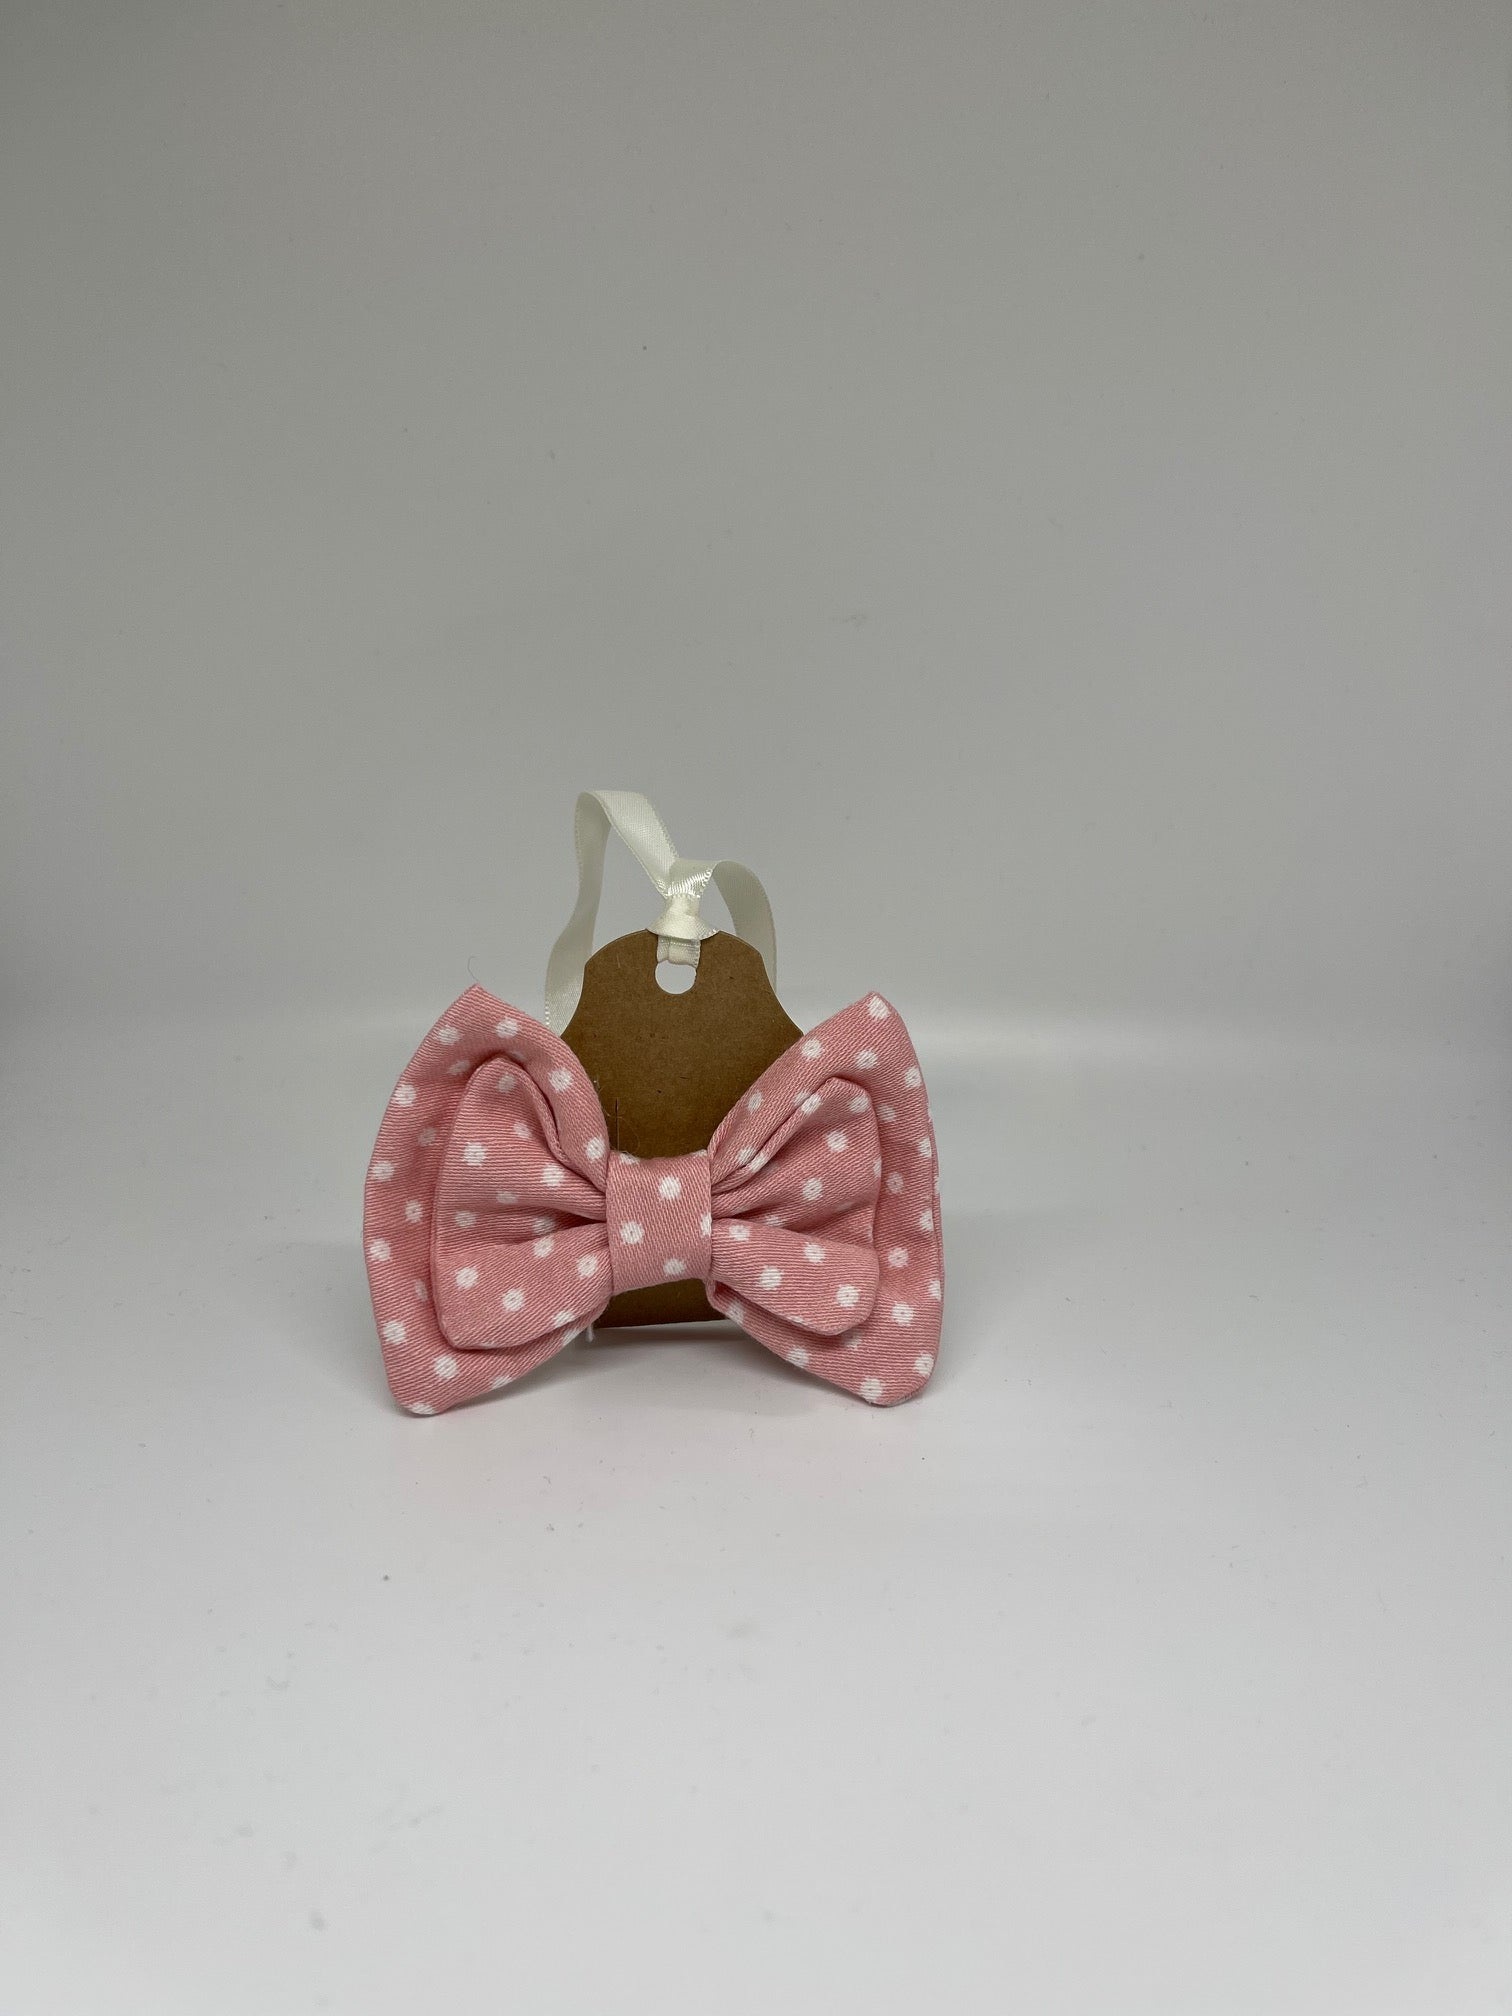 WALNUT STREET TREASURES - PINK WITH WHITE POLKADOTS